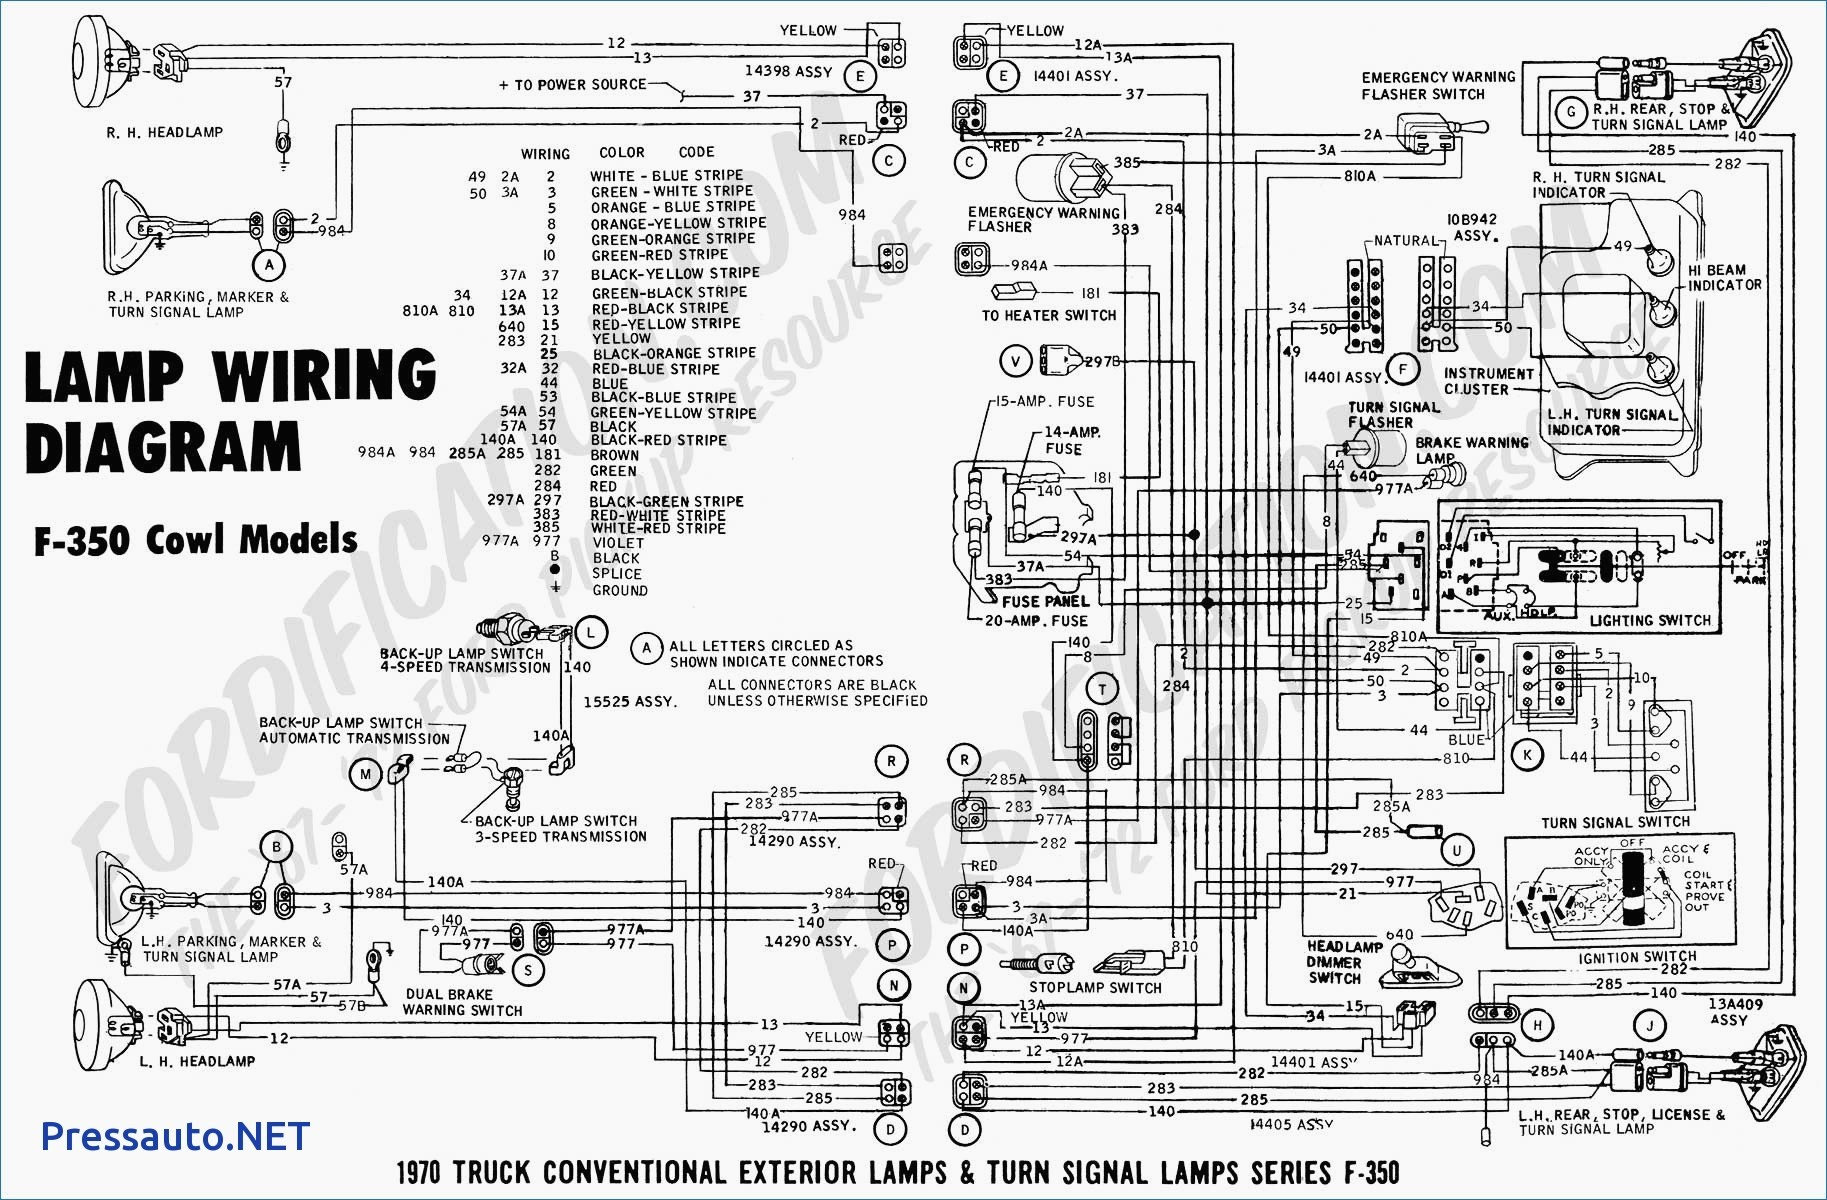 2003 explorer fuse box diagram wiring diagrams folder 2003 Ford Explorer 4.0L Engine Diagram